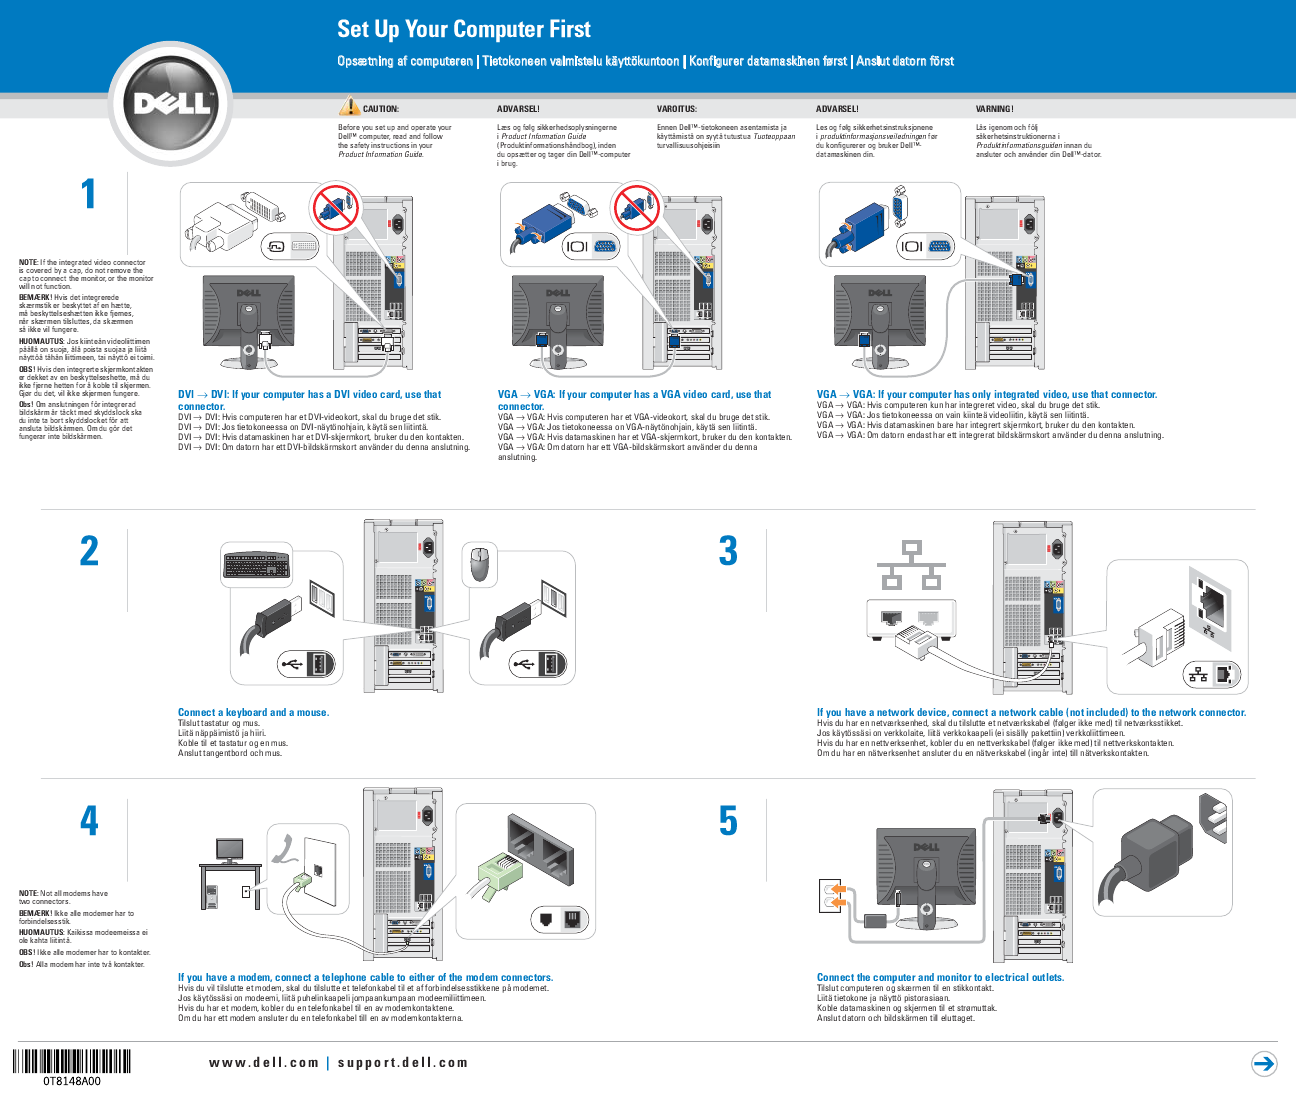 dell laptop 5100 user s guide manualsonline com dell axim pocket pc manual Dell User Guides and Manuals